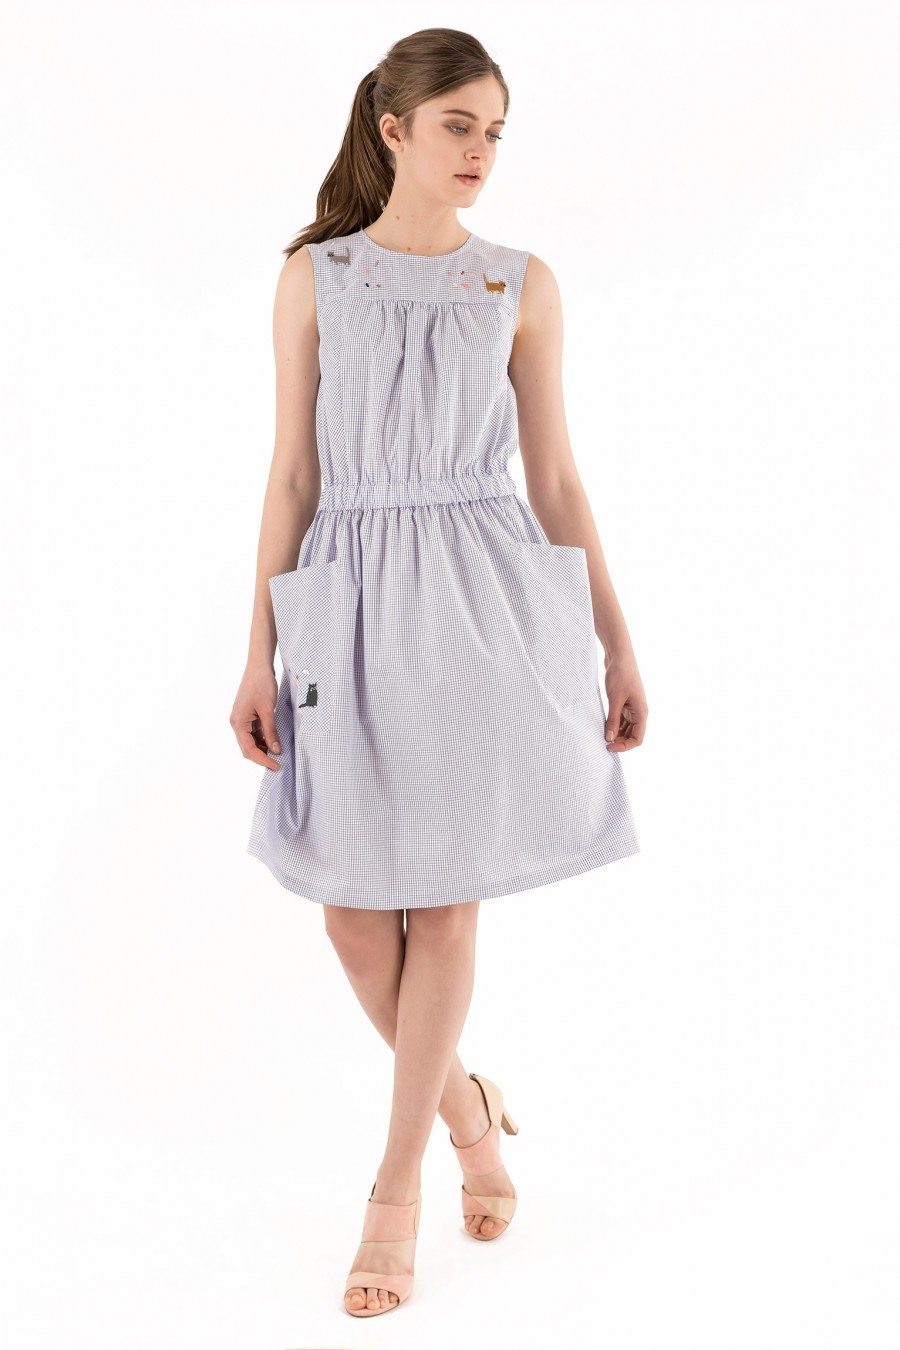 Cotton made in Italy dress